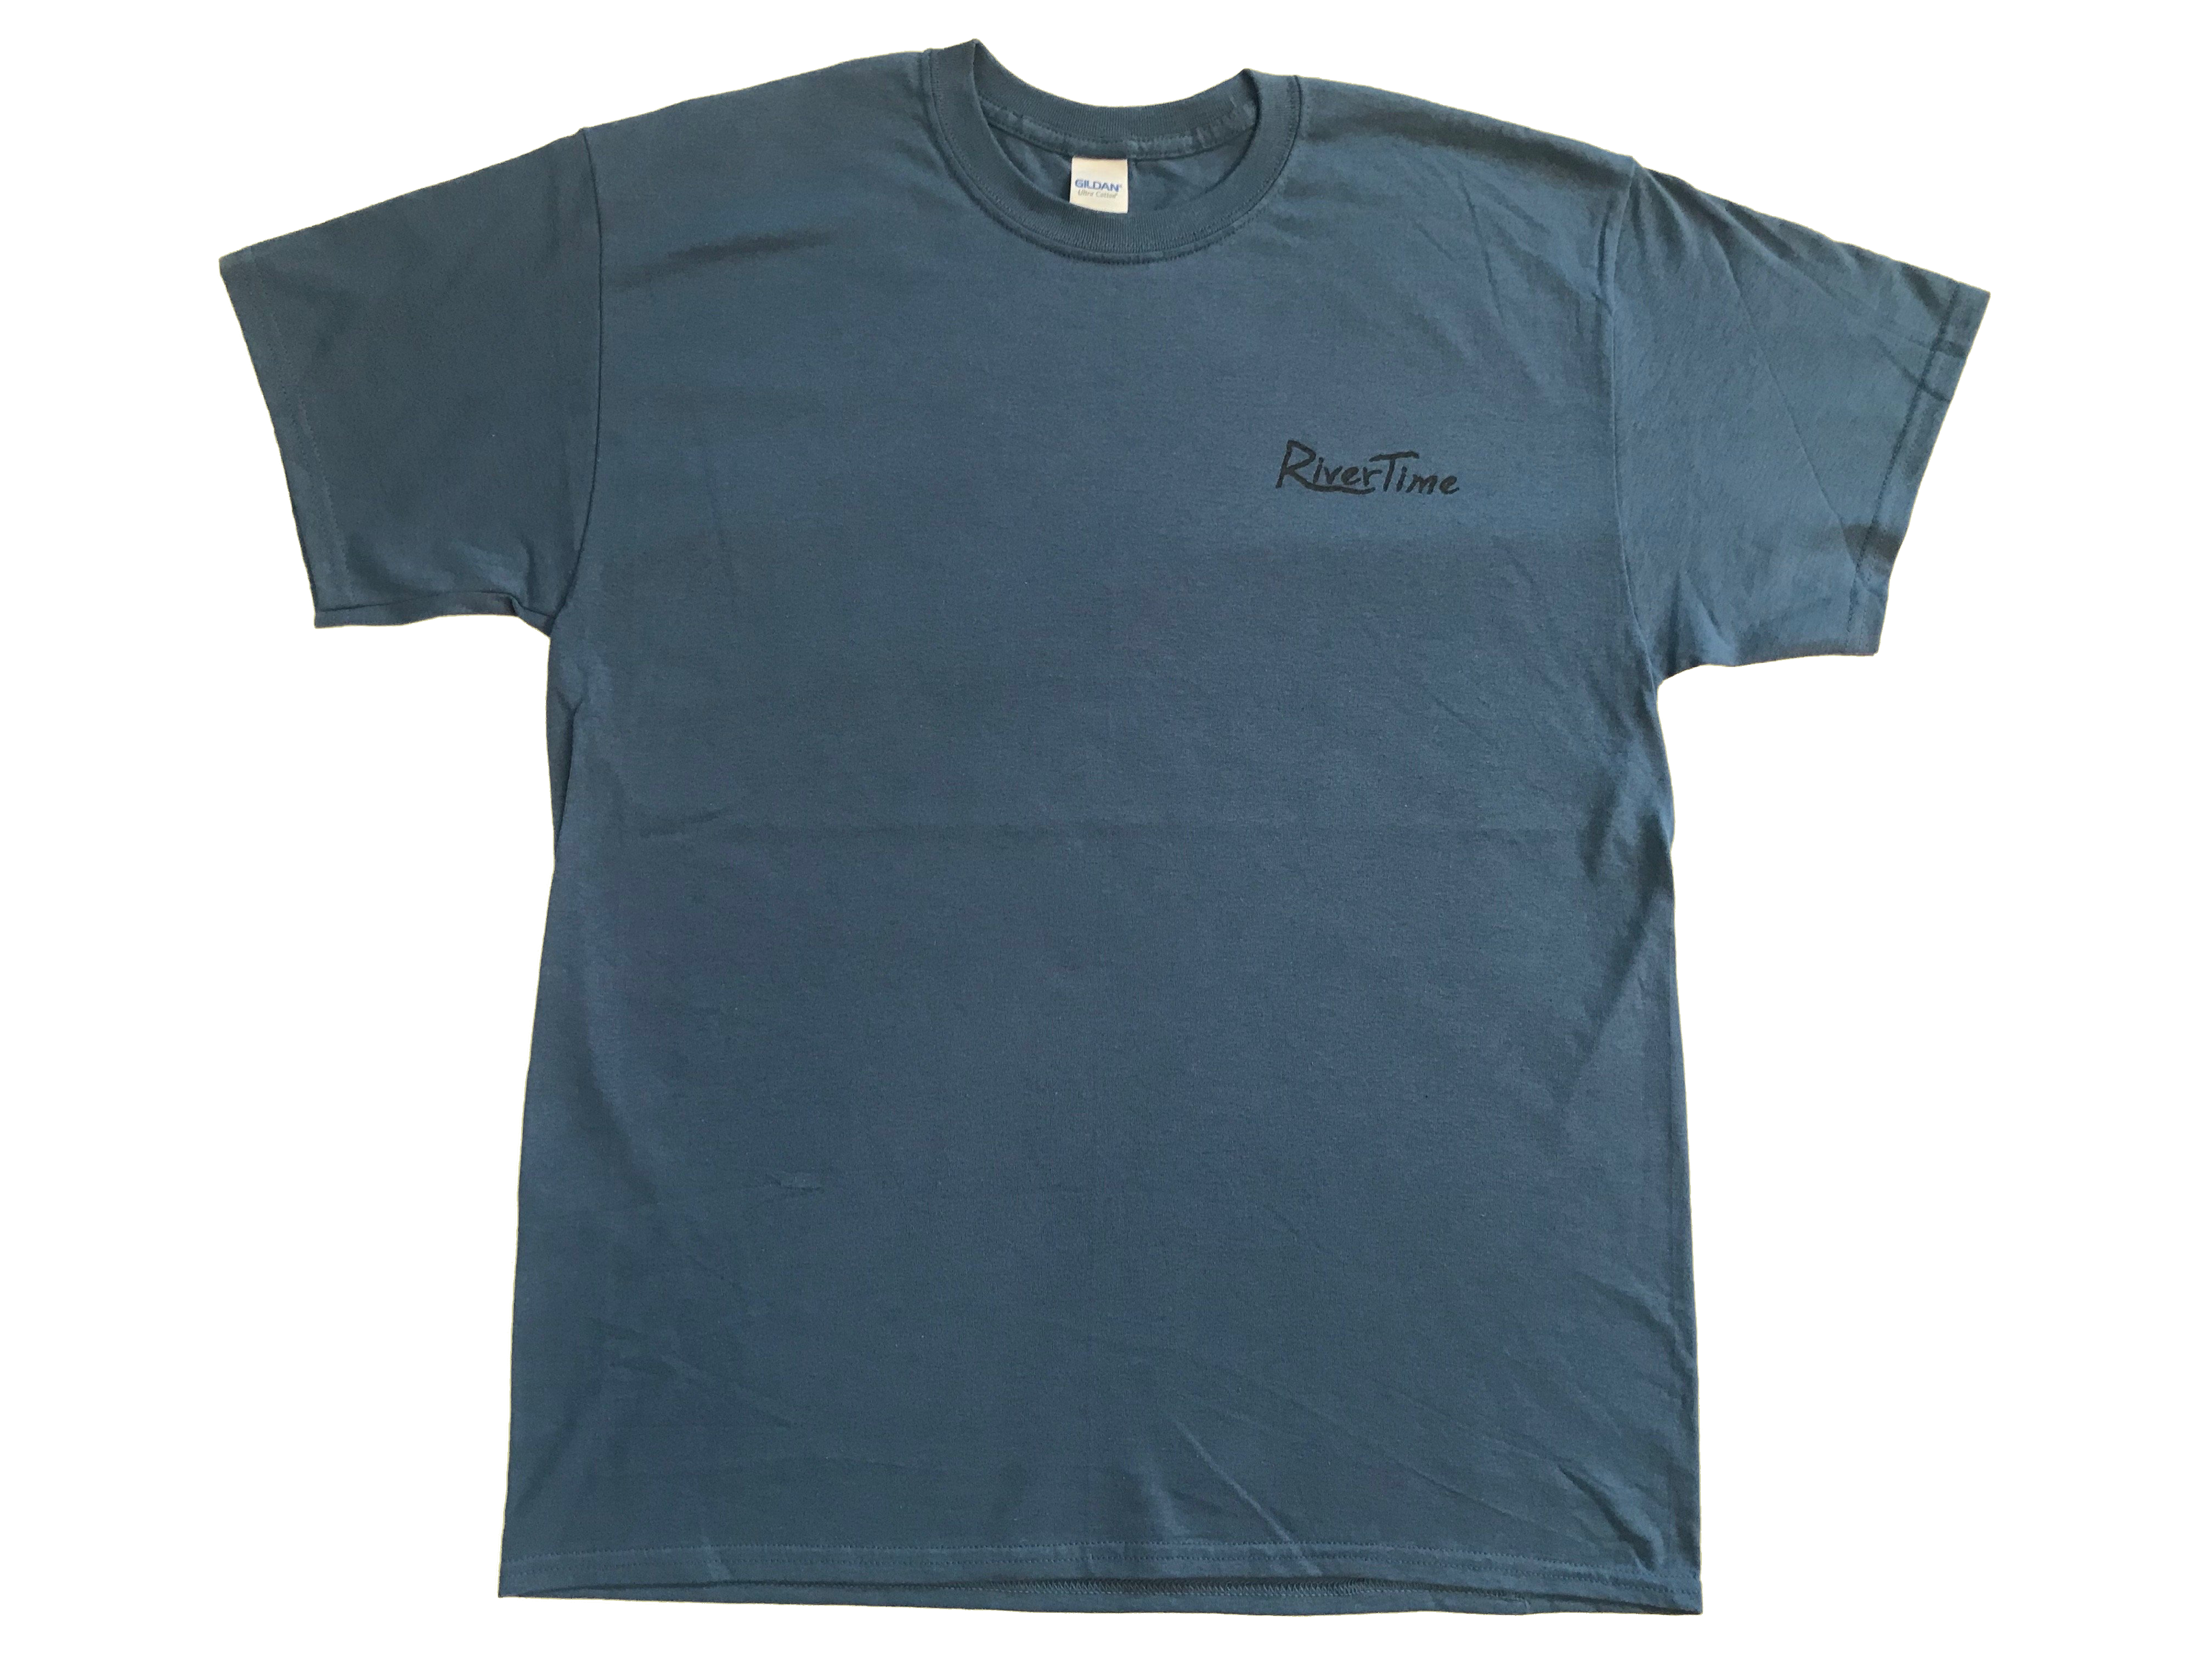 RiverTime Indigo Blue with Dark Gray Fish, Deer, Duck T-Shirt